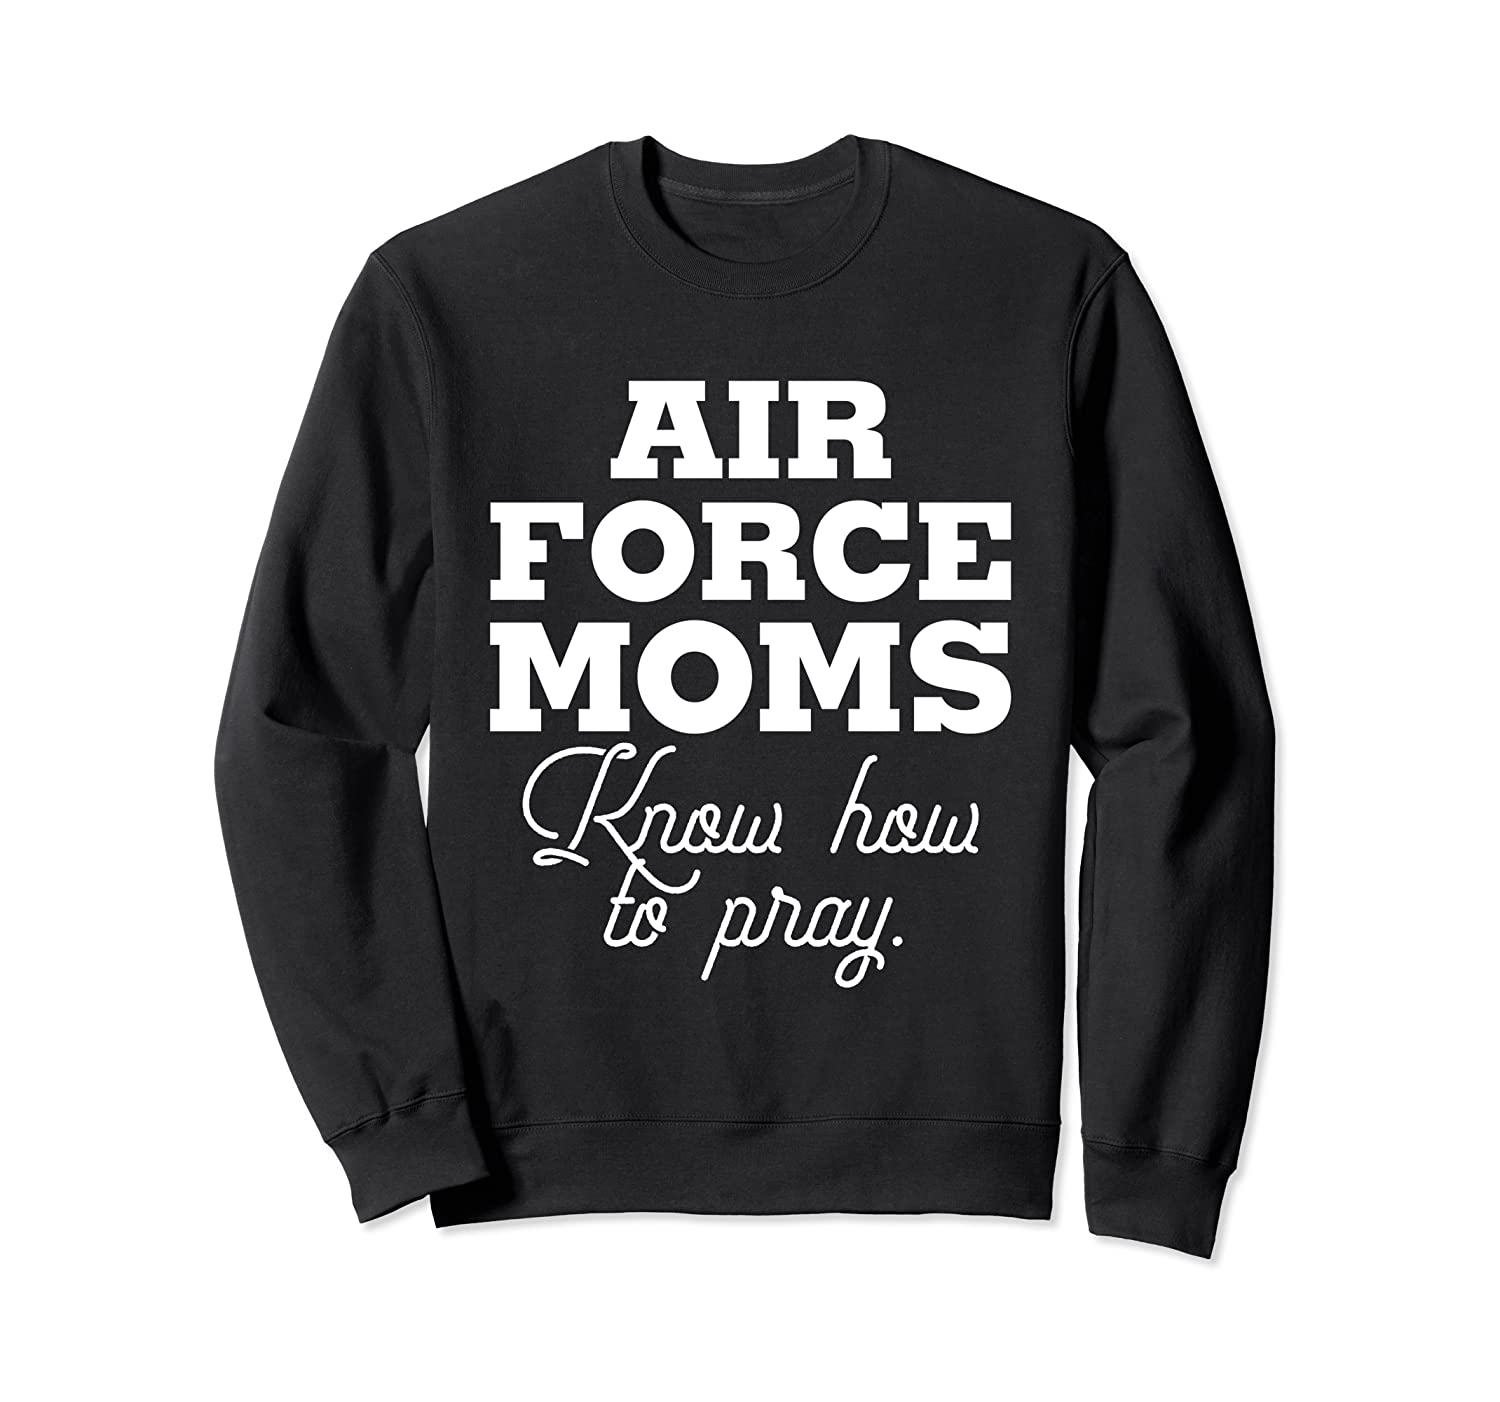 Air Force Moms Know How to Pray Sweatshirt